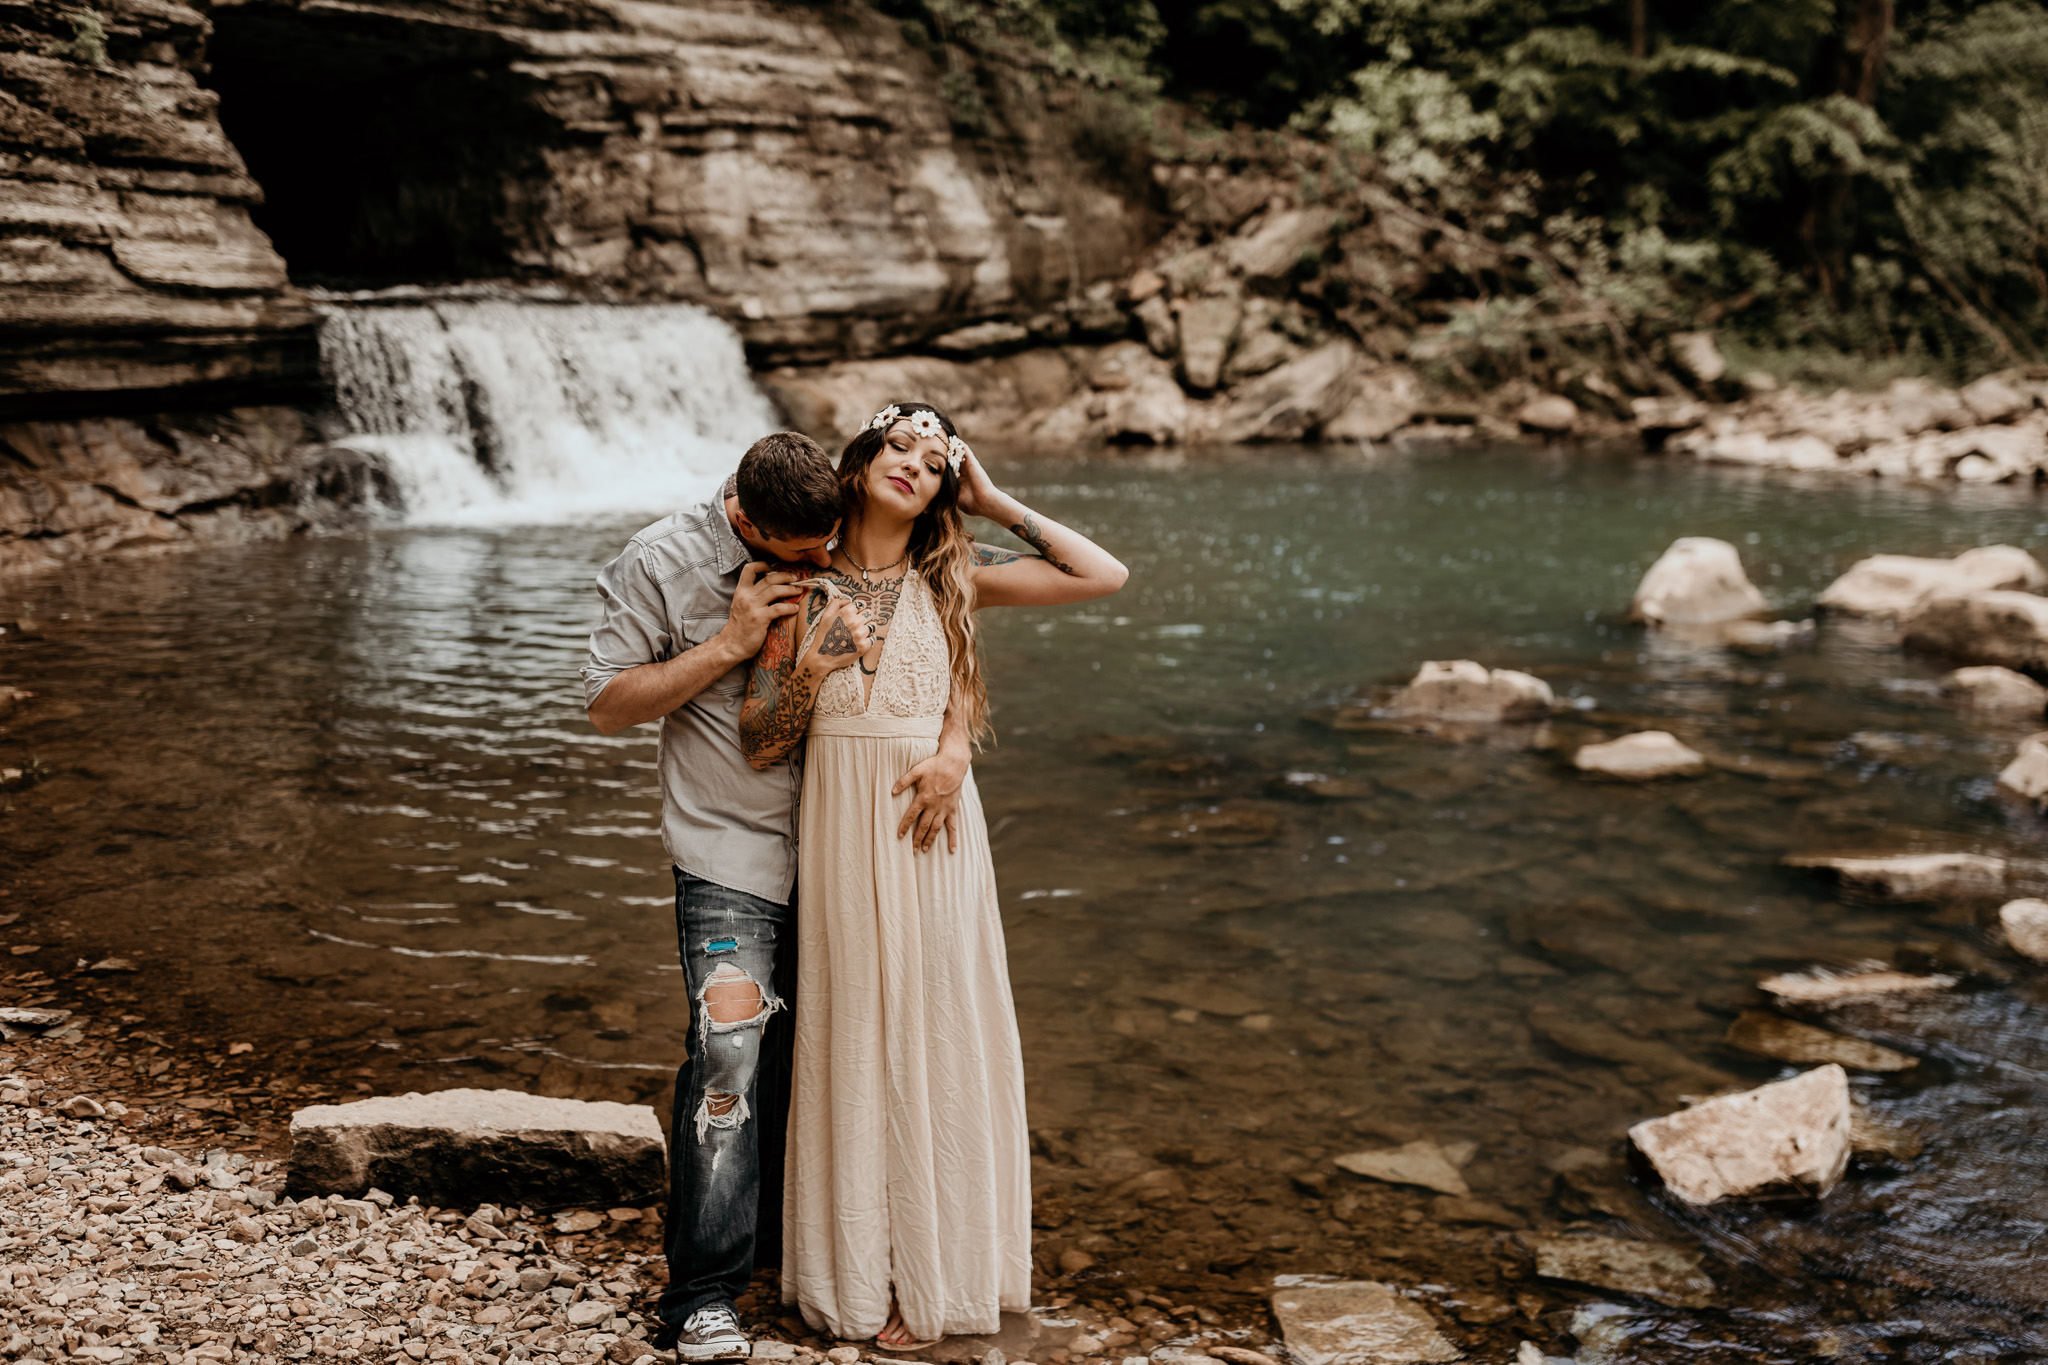 Couple standing by water embracing